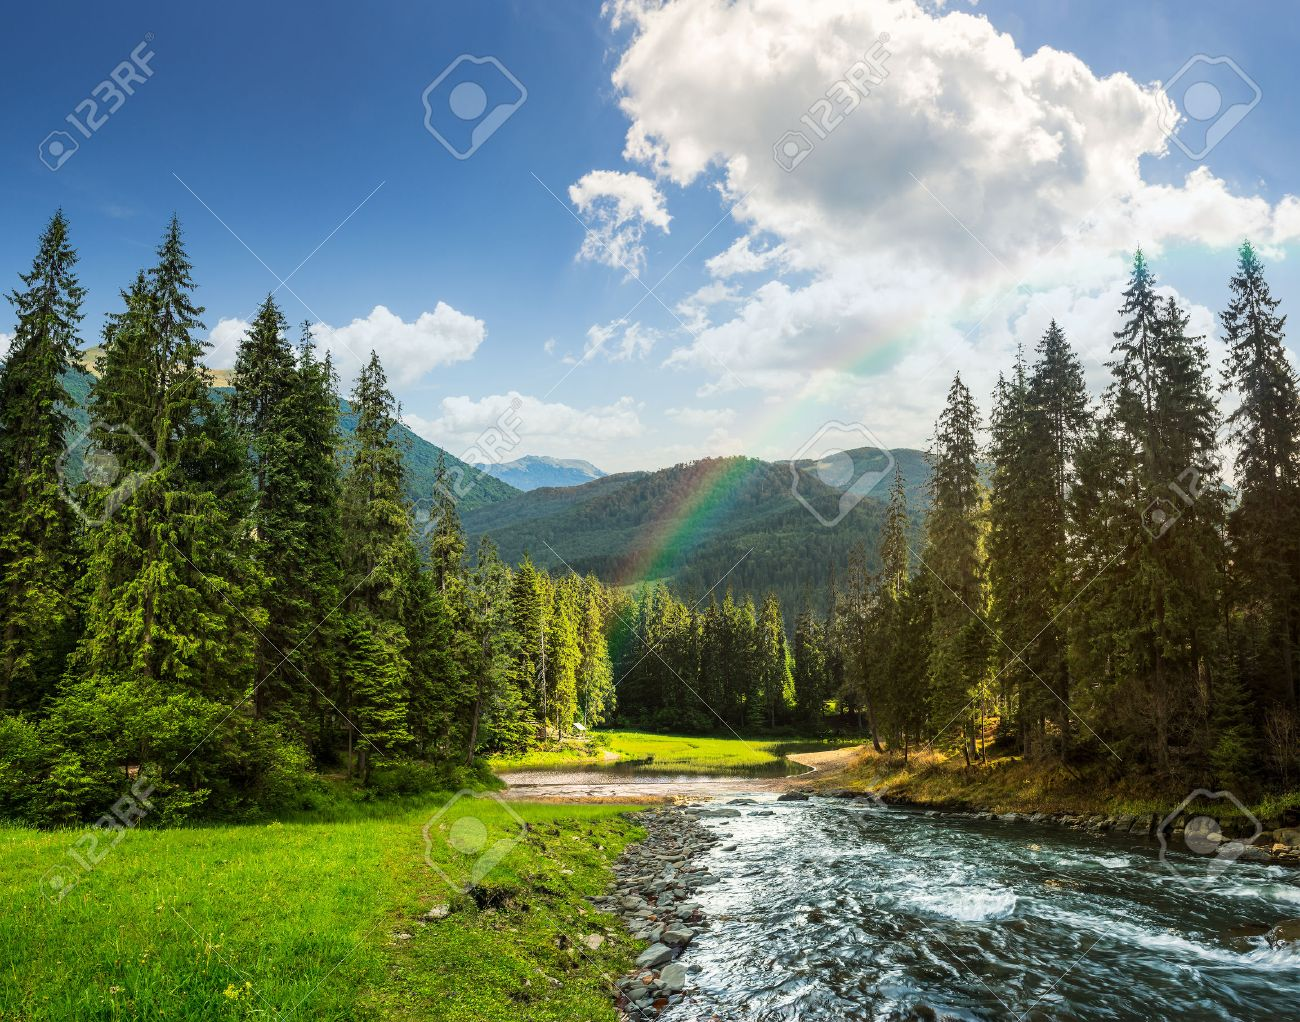 collage landscape with pine trees in mountains and a river in front flowing to lake in sunset light with rainbow - 34797853